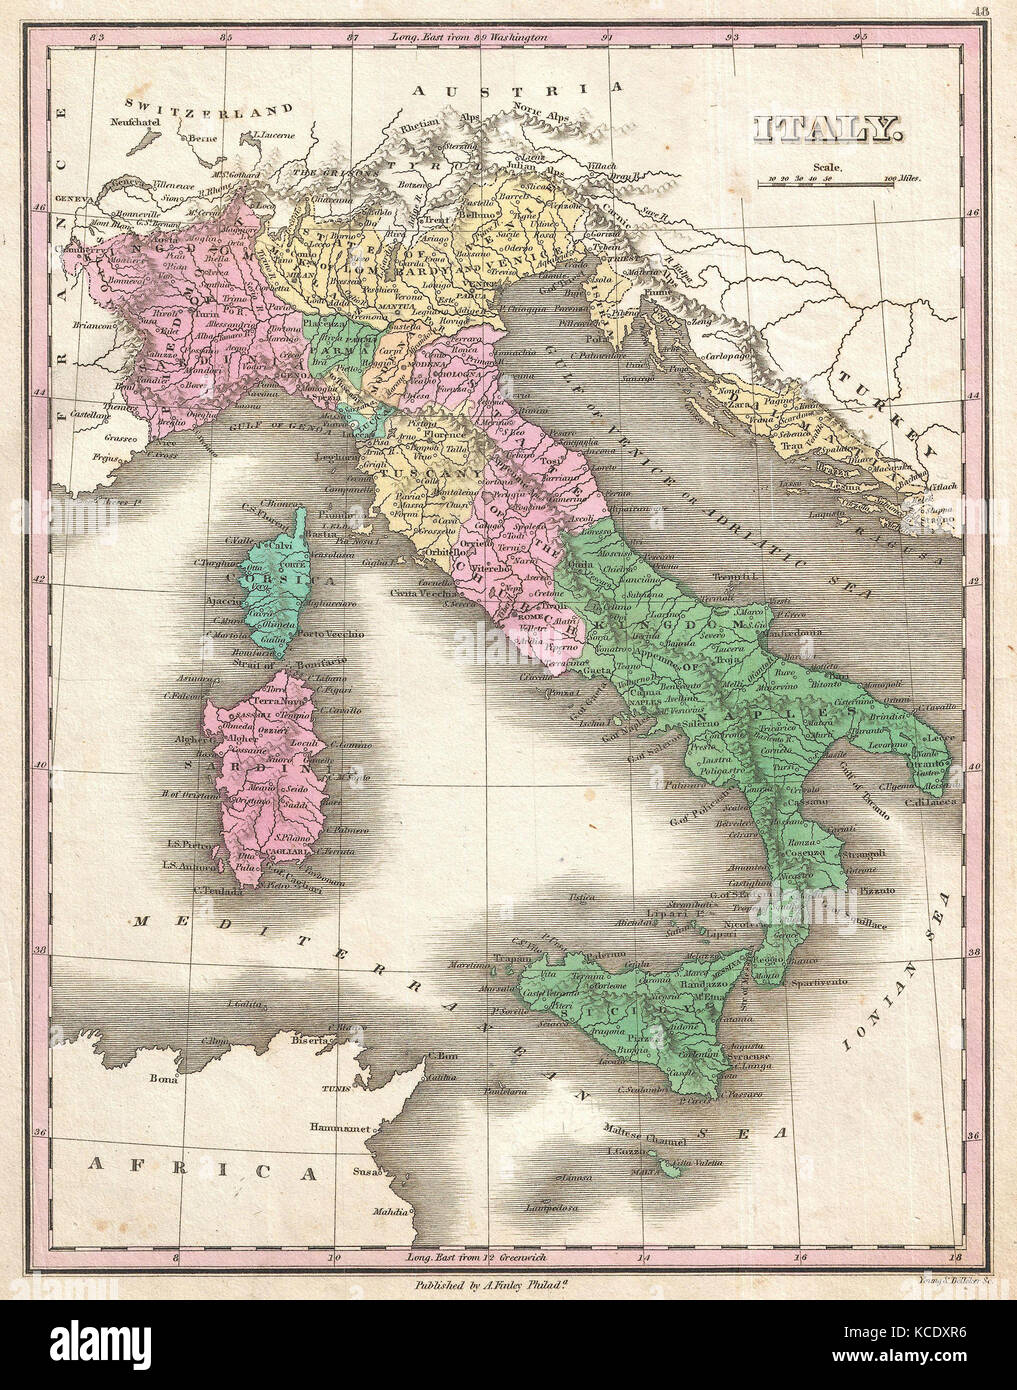 1827, Finley Map of Italy, Anthony Finley mapmaker of the United States in the 19th century - Stock Image